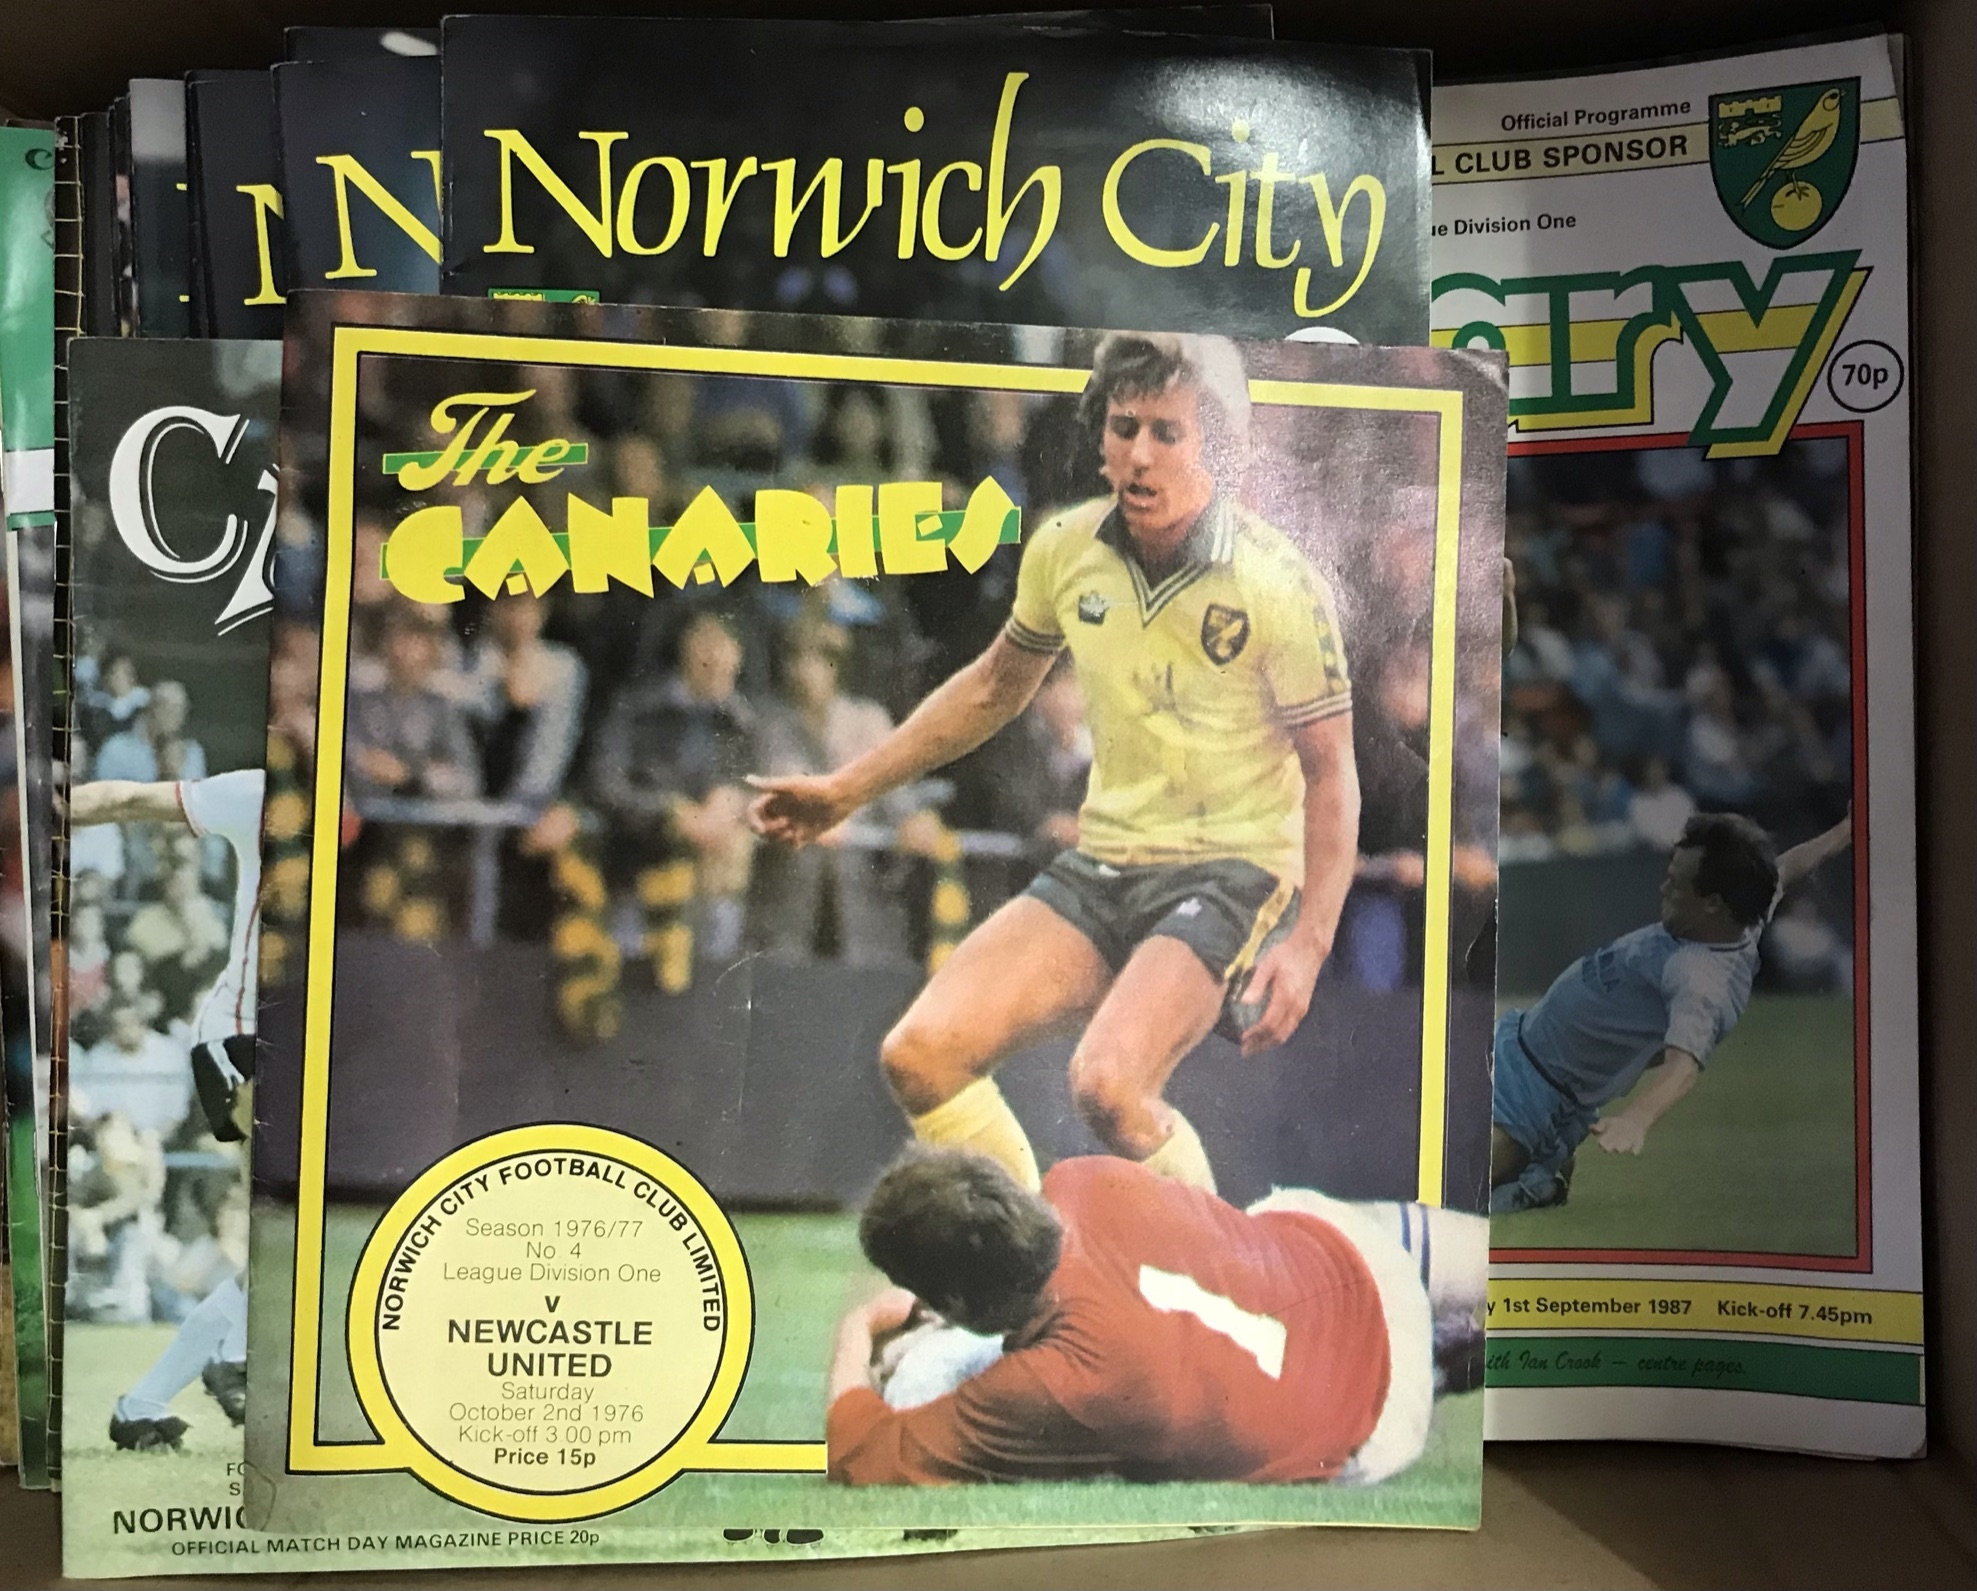 Norwich City Football Club - 1972-1979 - nice clean range of programmes (57). Buyer collects this